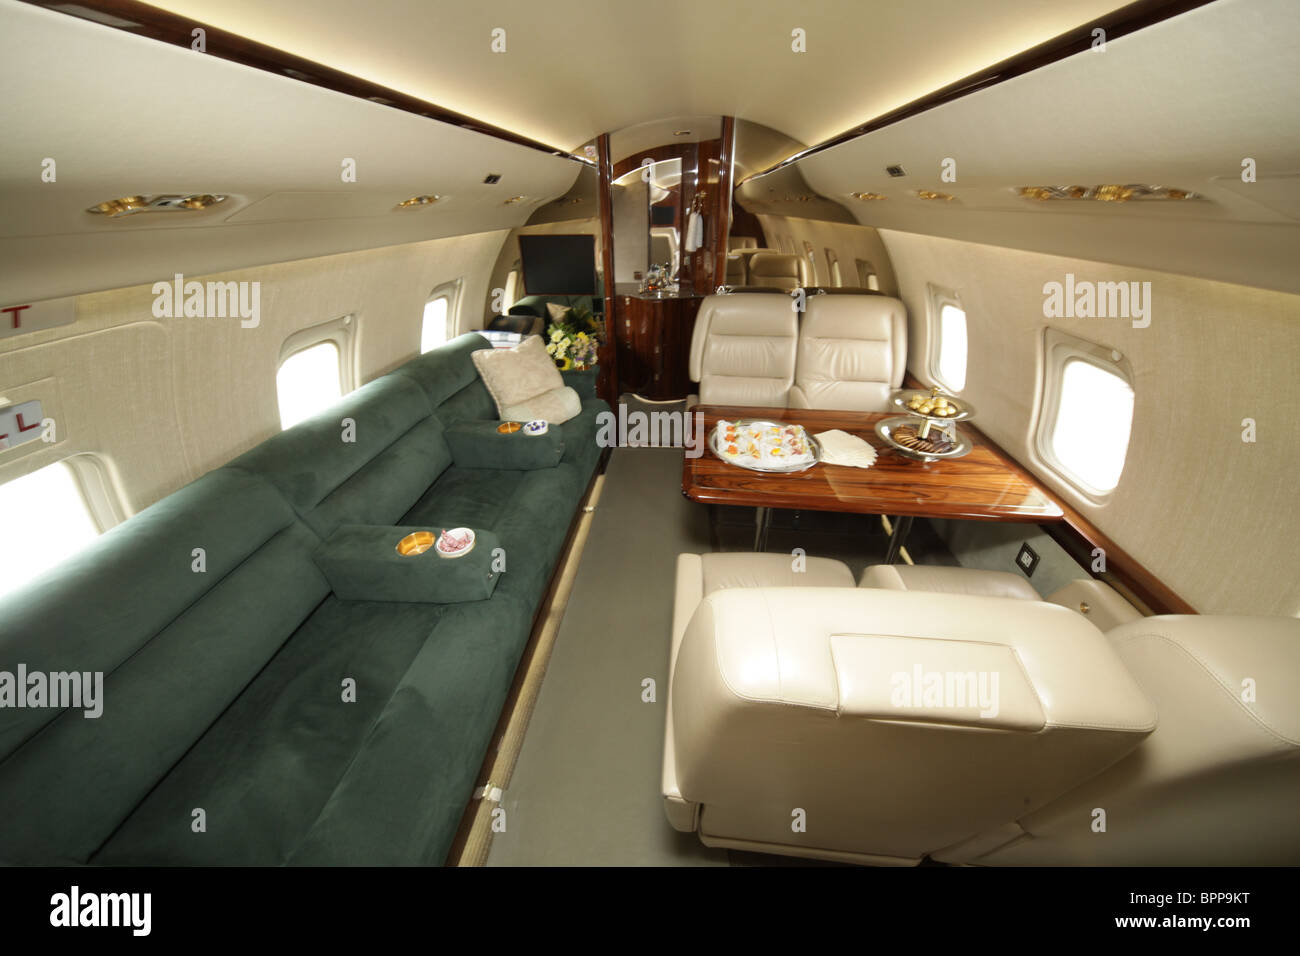 Jet Expo 2009 International Business Aviation Exhibition opens - Stock Image